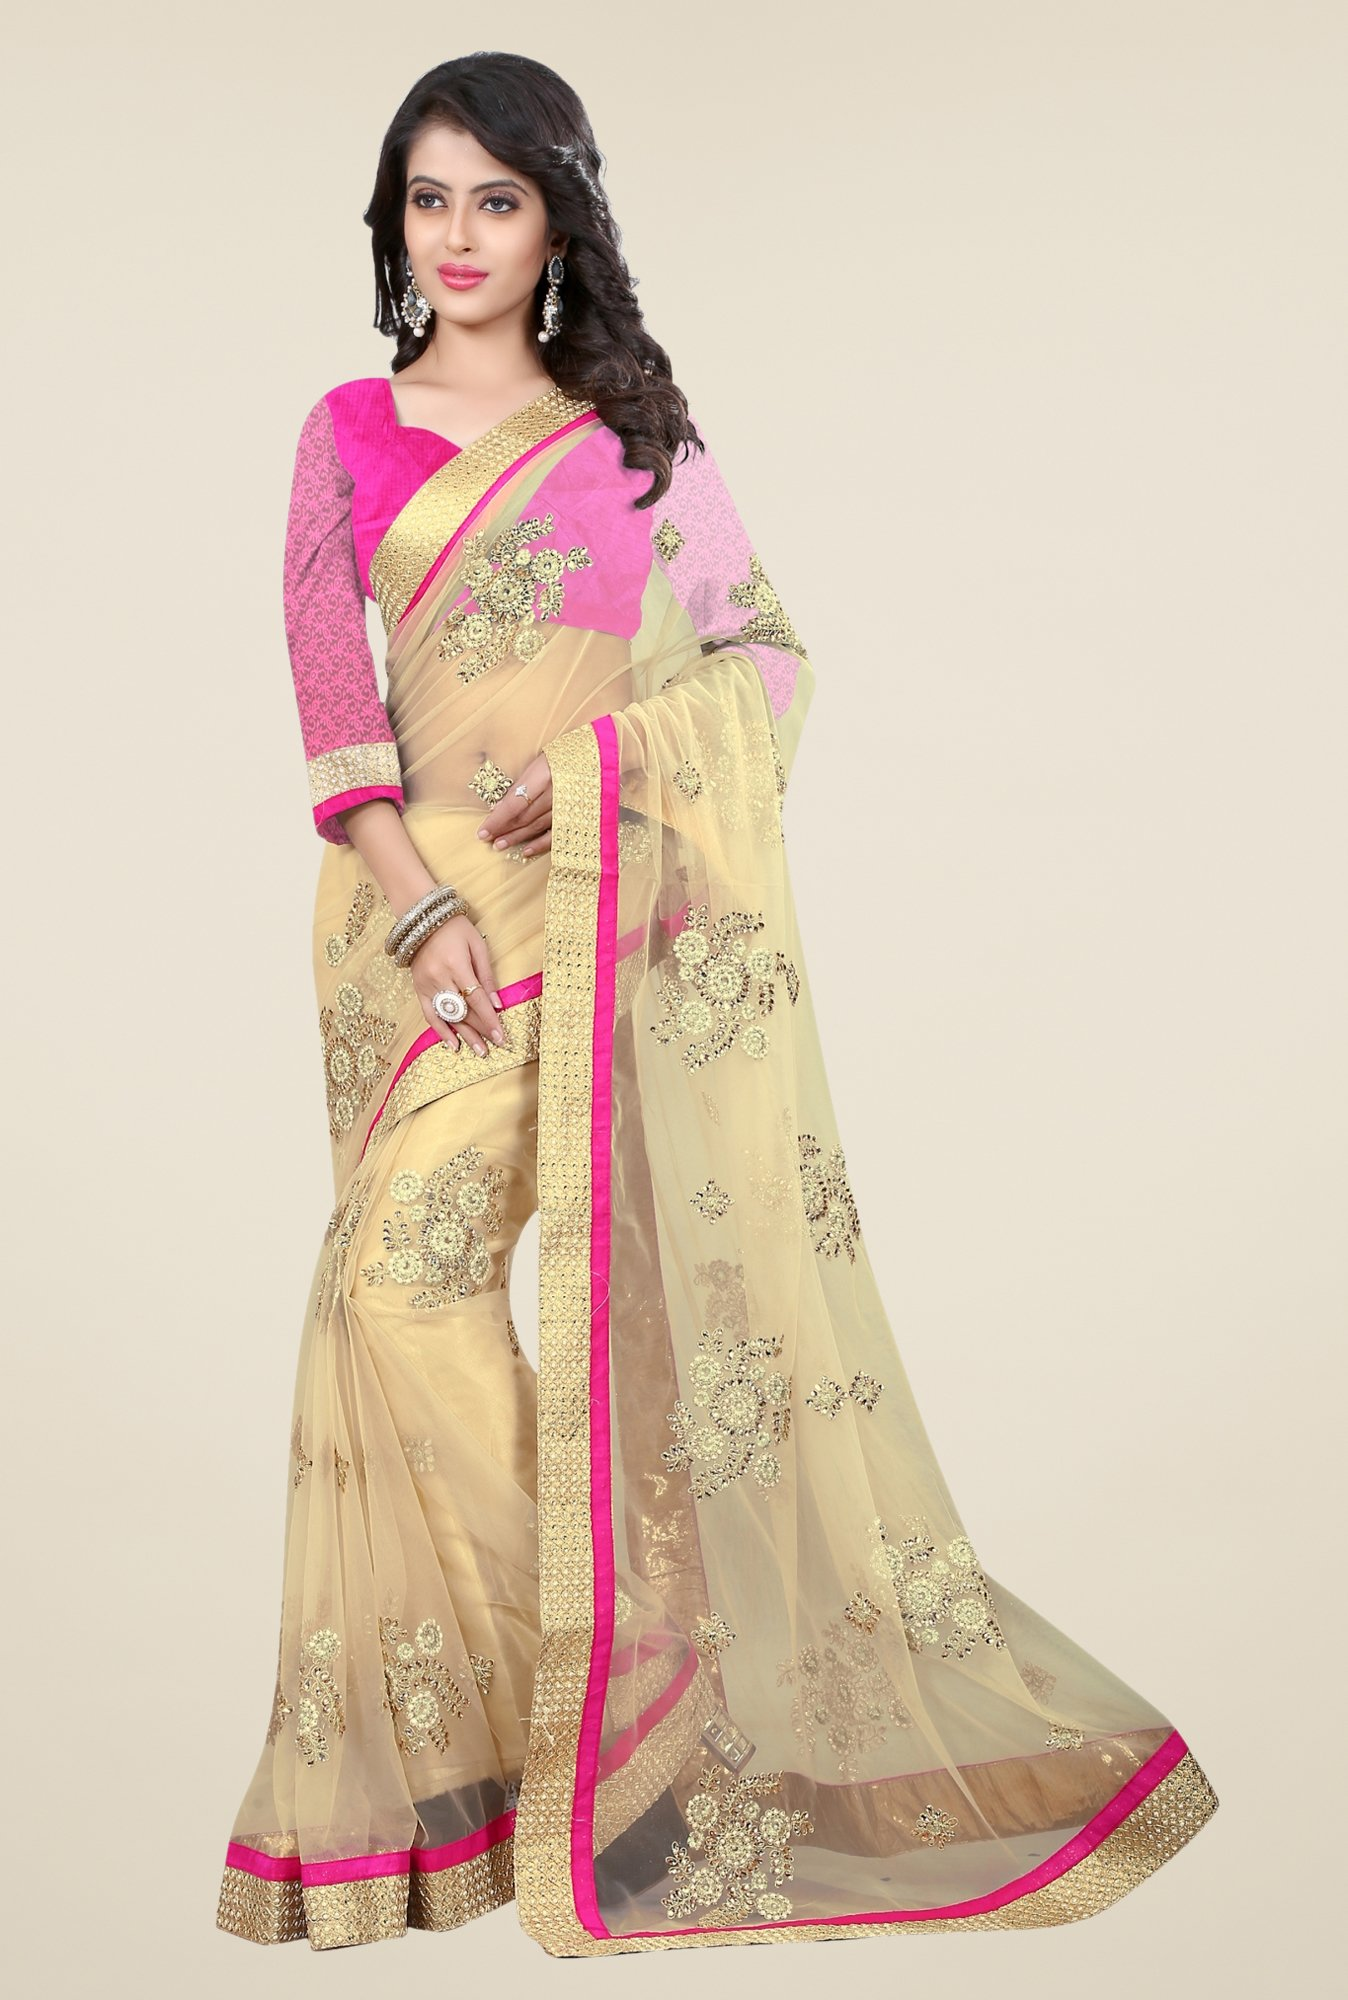 Triveni Beige Embroidered Net Saree